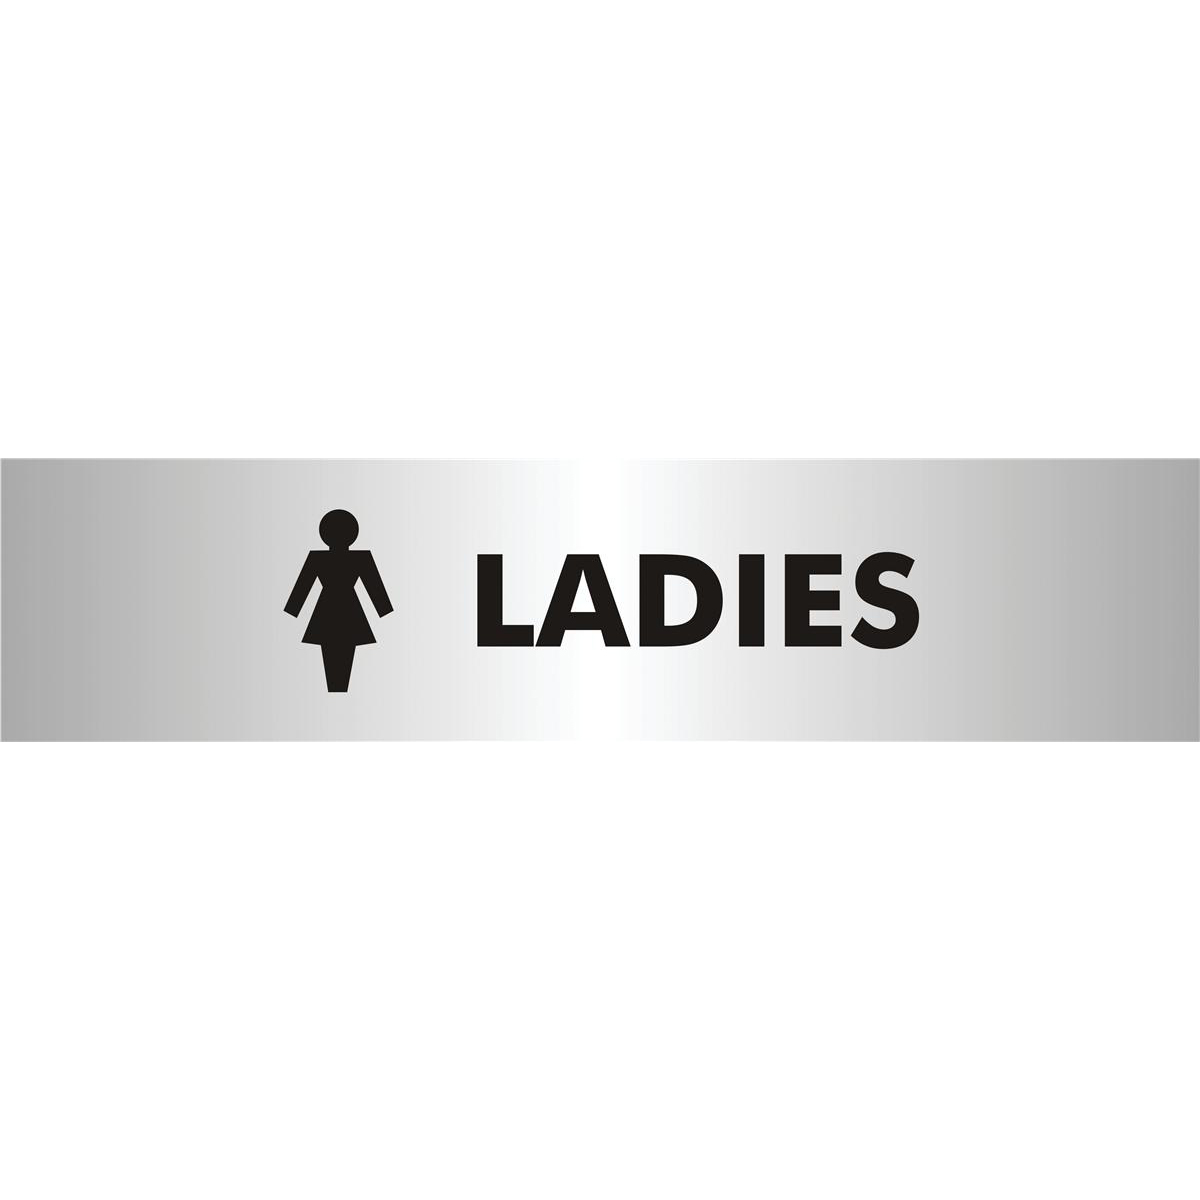 Stewart Superior Ladies Sign Brushed Aluminium Acrylic W190xH45mm Self-adhesive Ref bac113